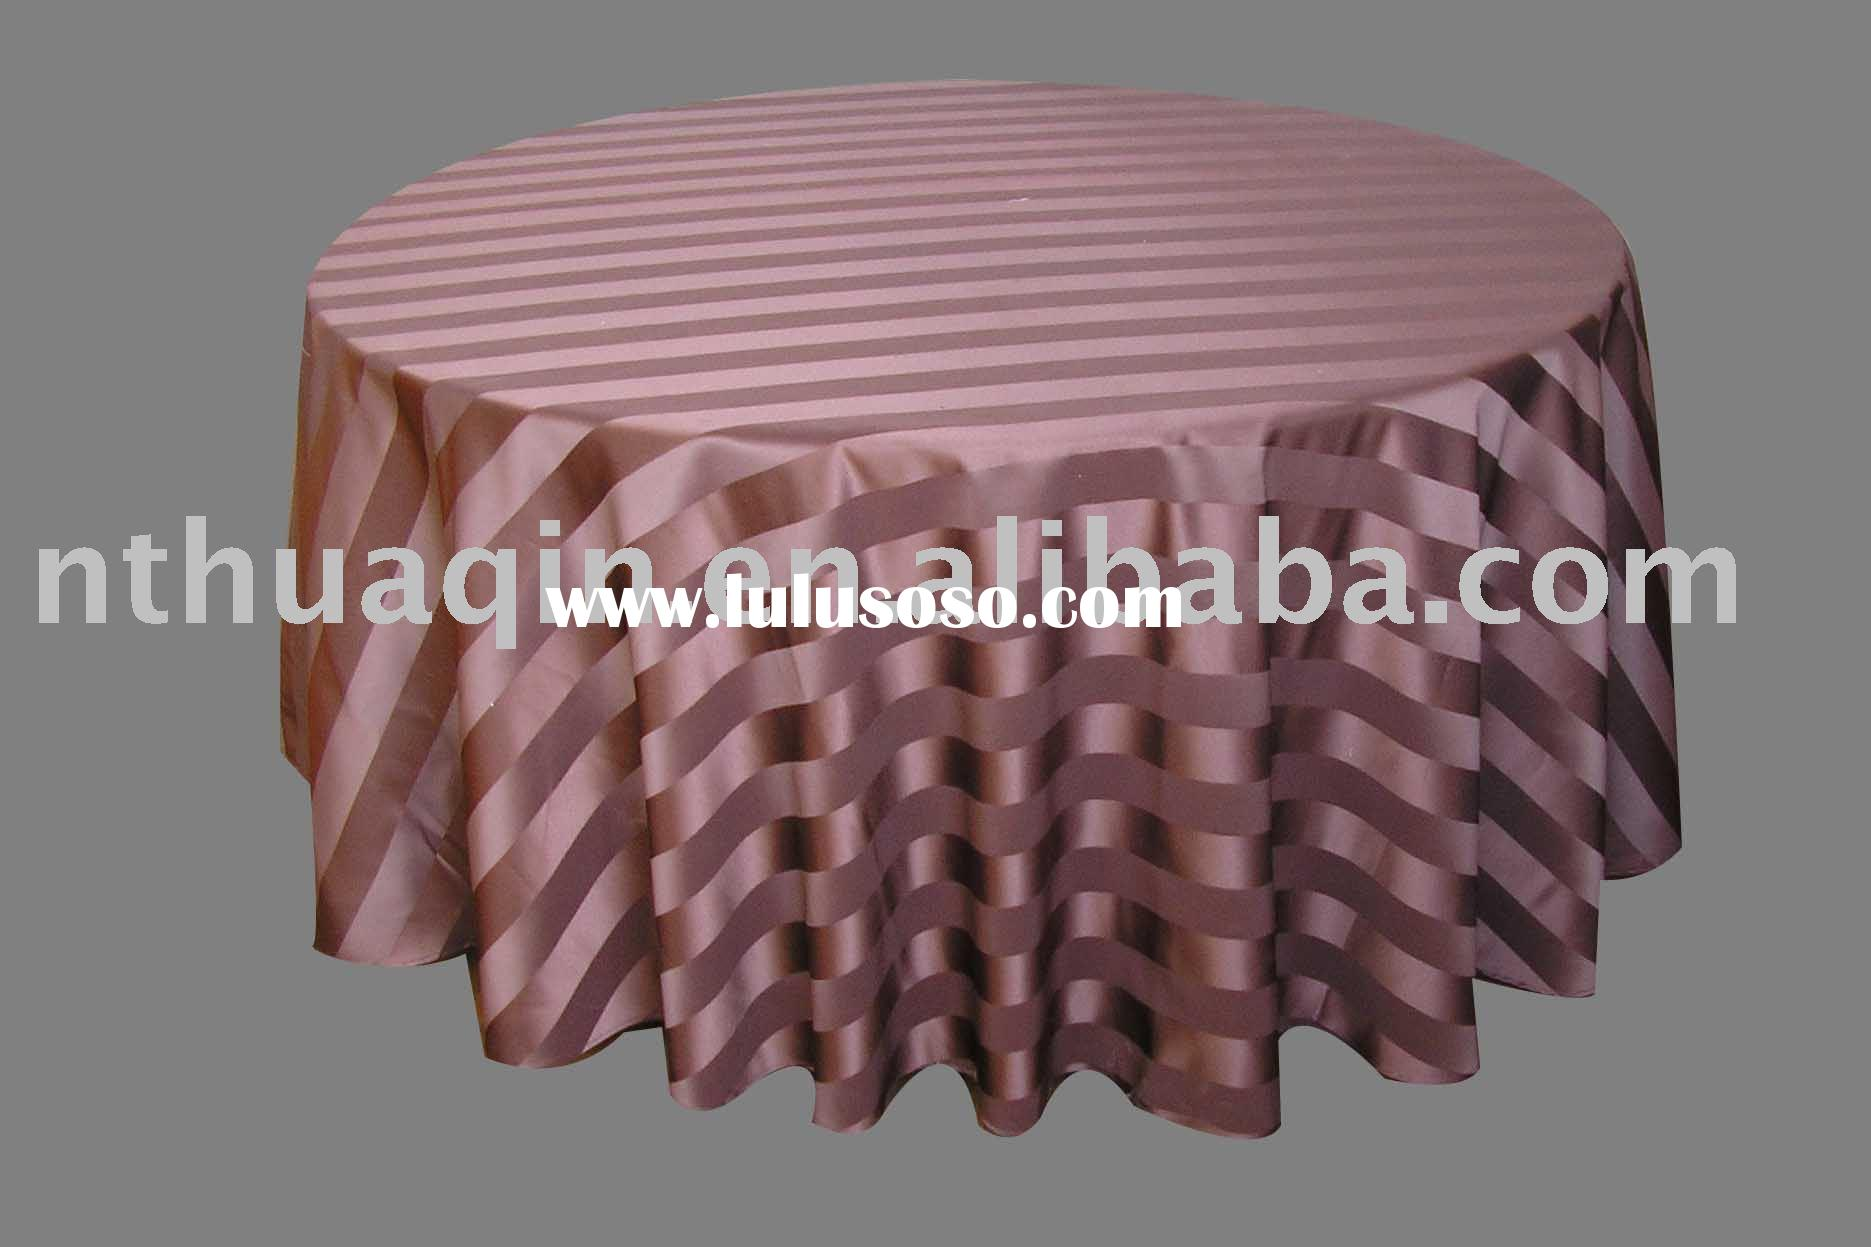 Satin strip tablecloth, polyester tablecloth, jacquard tablecloth